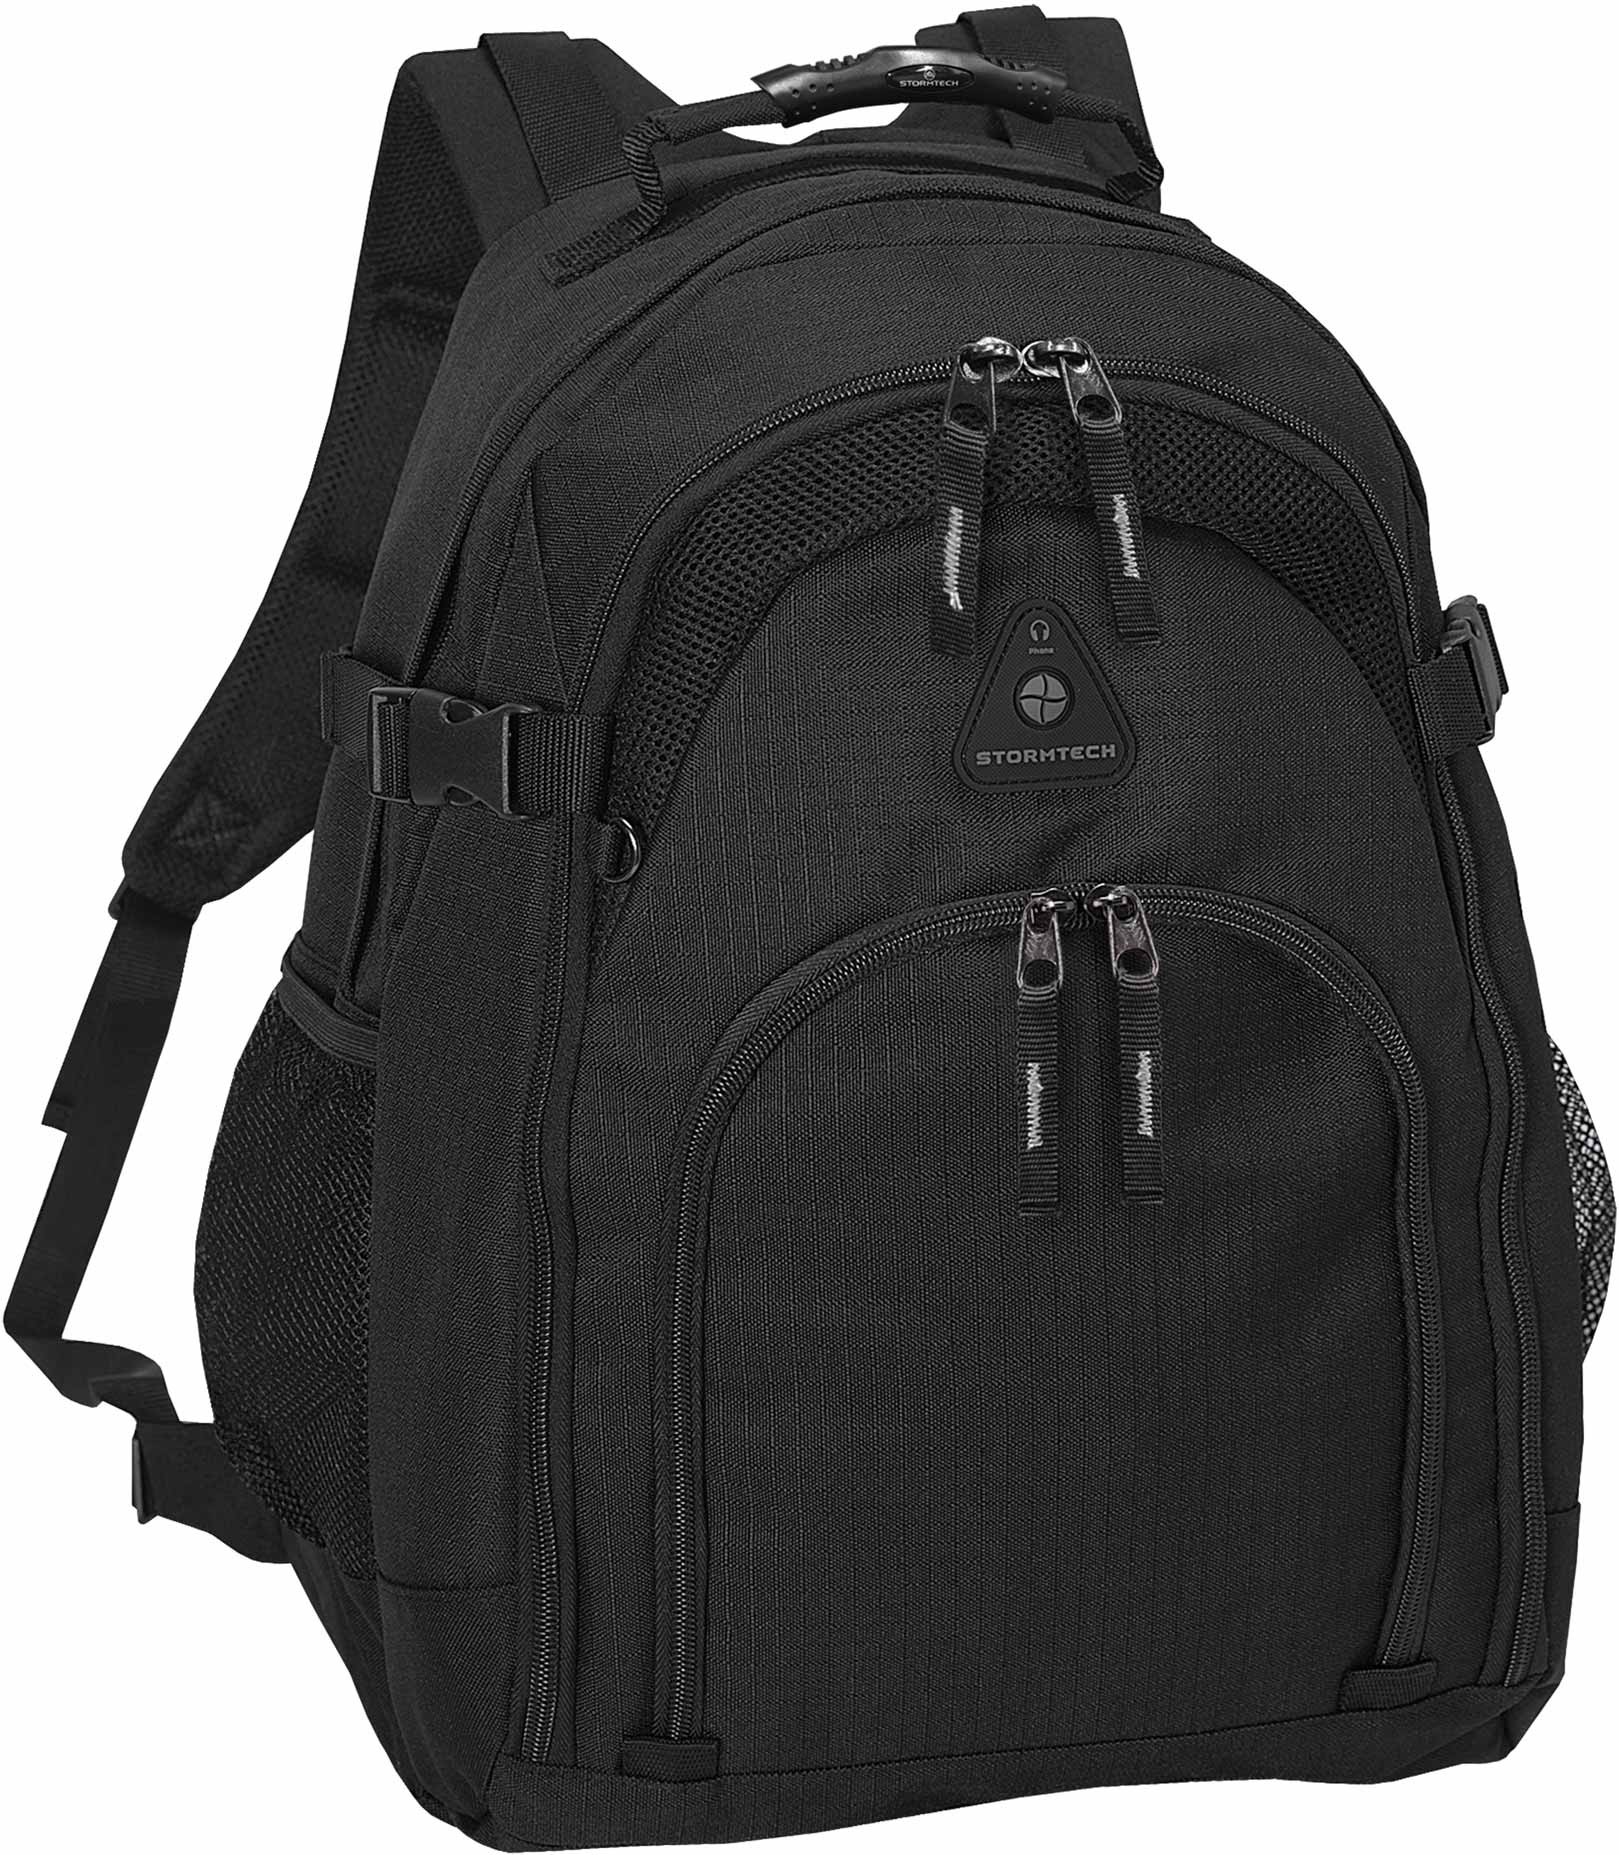 Stormtech Cargo Day Pack